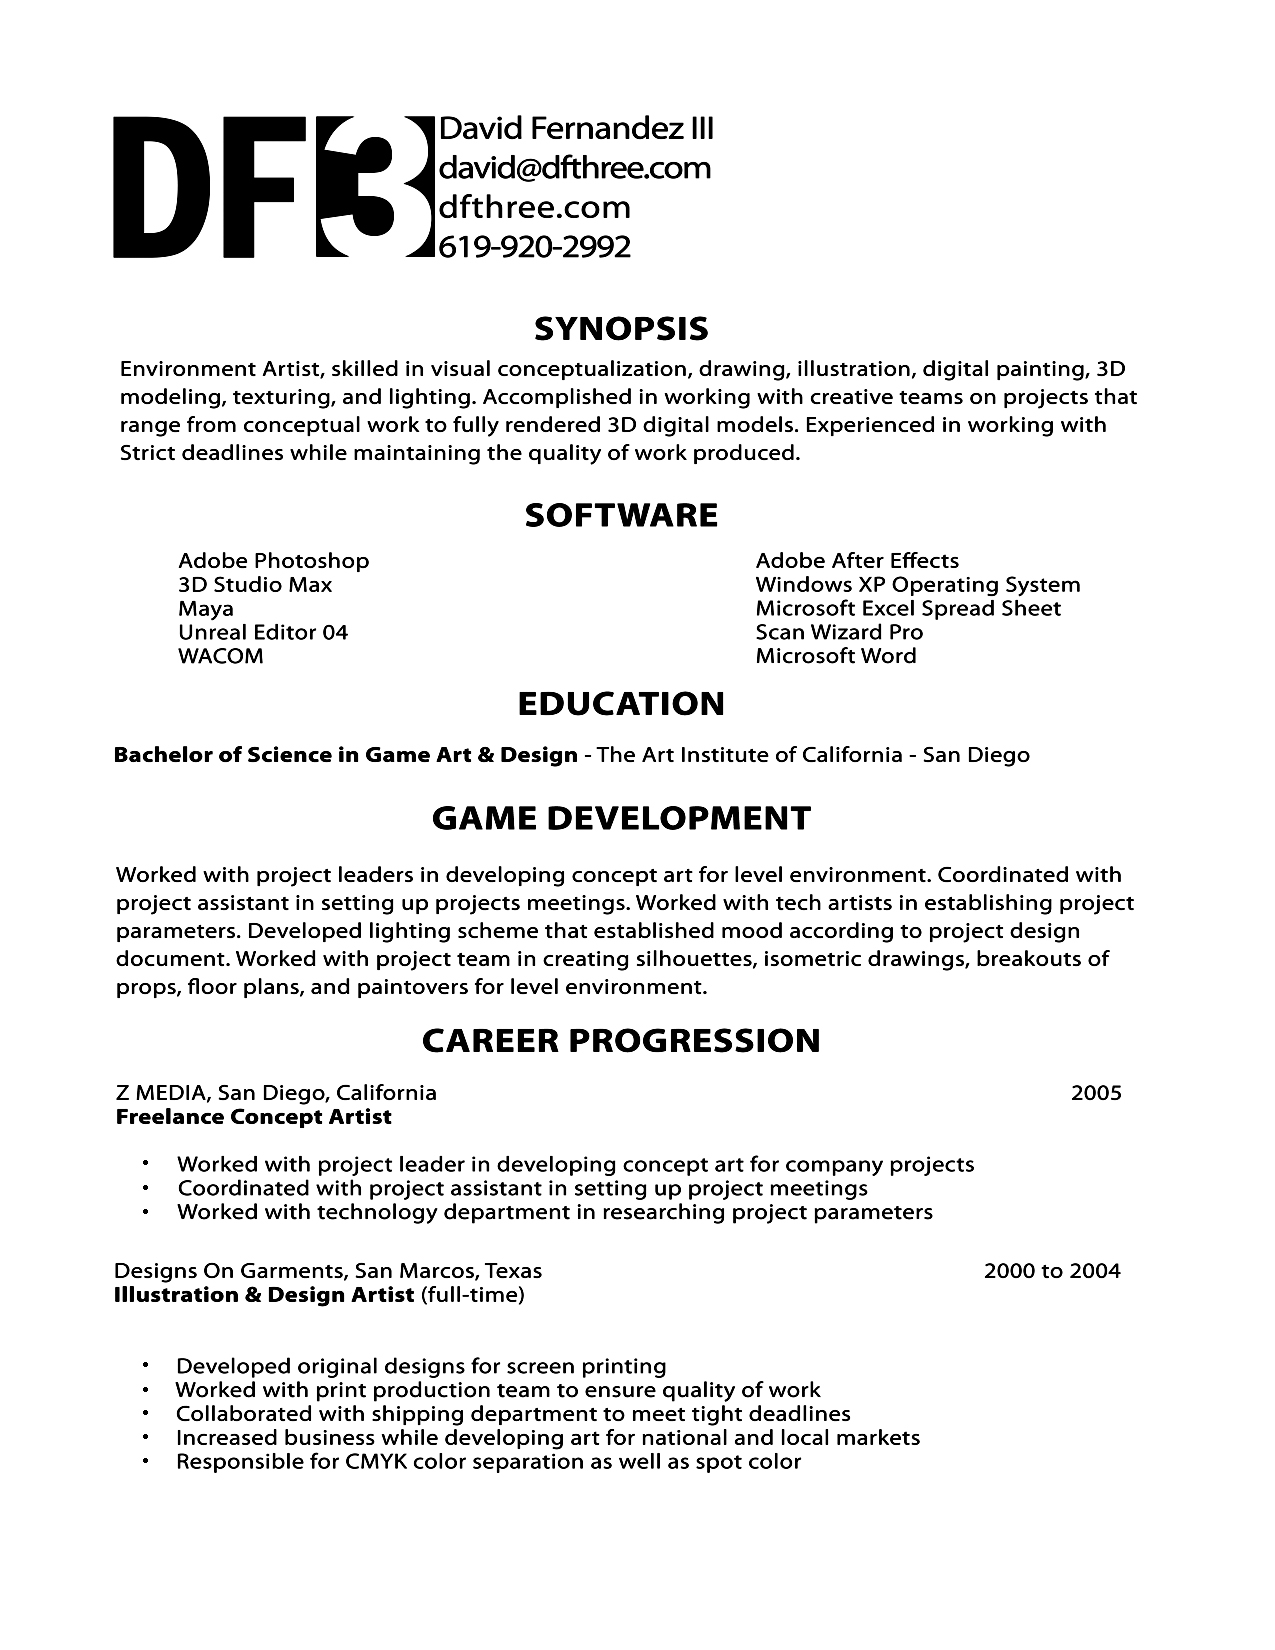 Opposenewapstandardsus  Mesmerizing Game Developer Resume Game Tester Resume Sample Game Tester  With Licious Better Jobs Faster With Cool Research Experience Resume Also Medical Surgical Nurse Resume In Addition What Employers Look For In A Resume And Training Specialist Resume As Well As Resume Letterhead Additionally Cheap Resumes From Kelseymarieco With Opposenewapstandardsus  Licious Game Developer Resume Game Tester Resume Sample Game Tester  With Cool Better Jobs Faster And Mesmerizing Research Experience Resume Also Medical Surgical Nurse Resume In Addition What Employers Look For In A Resume From Kelseymarieco